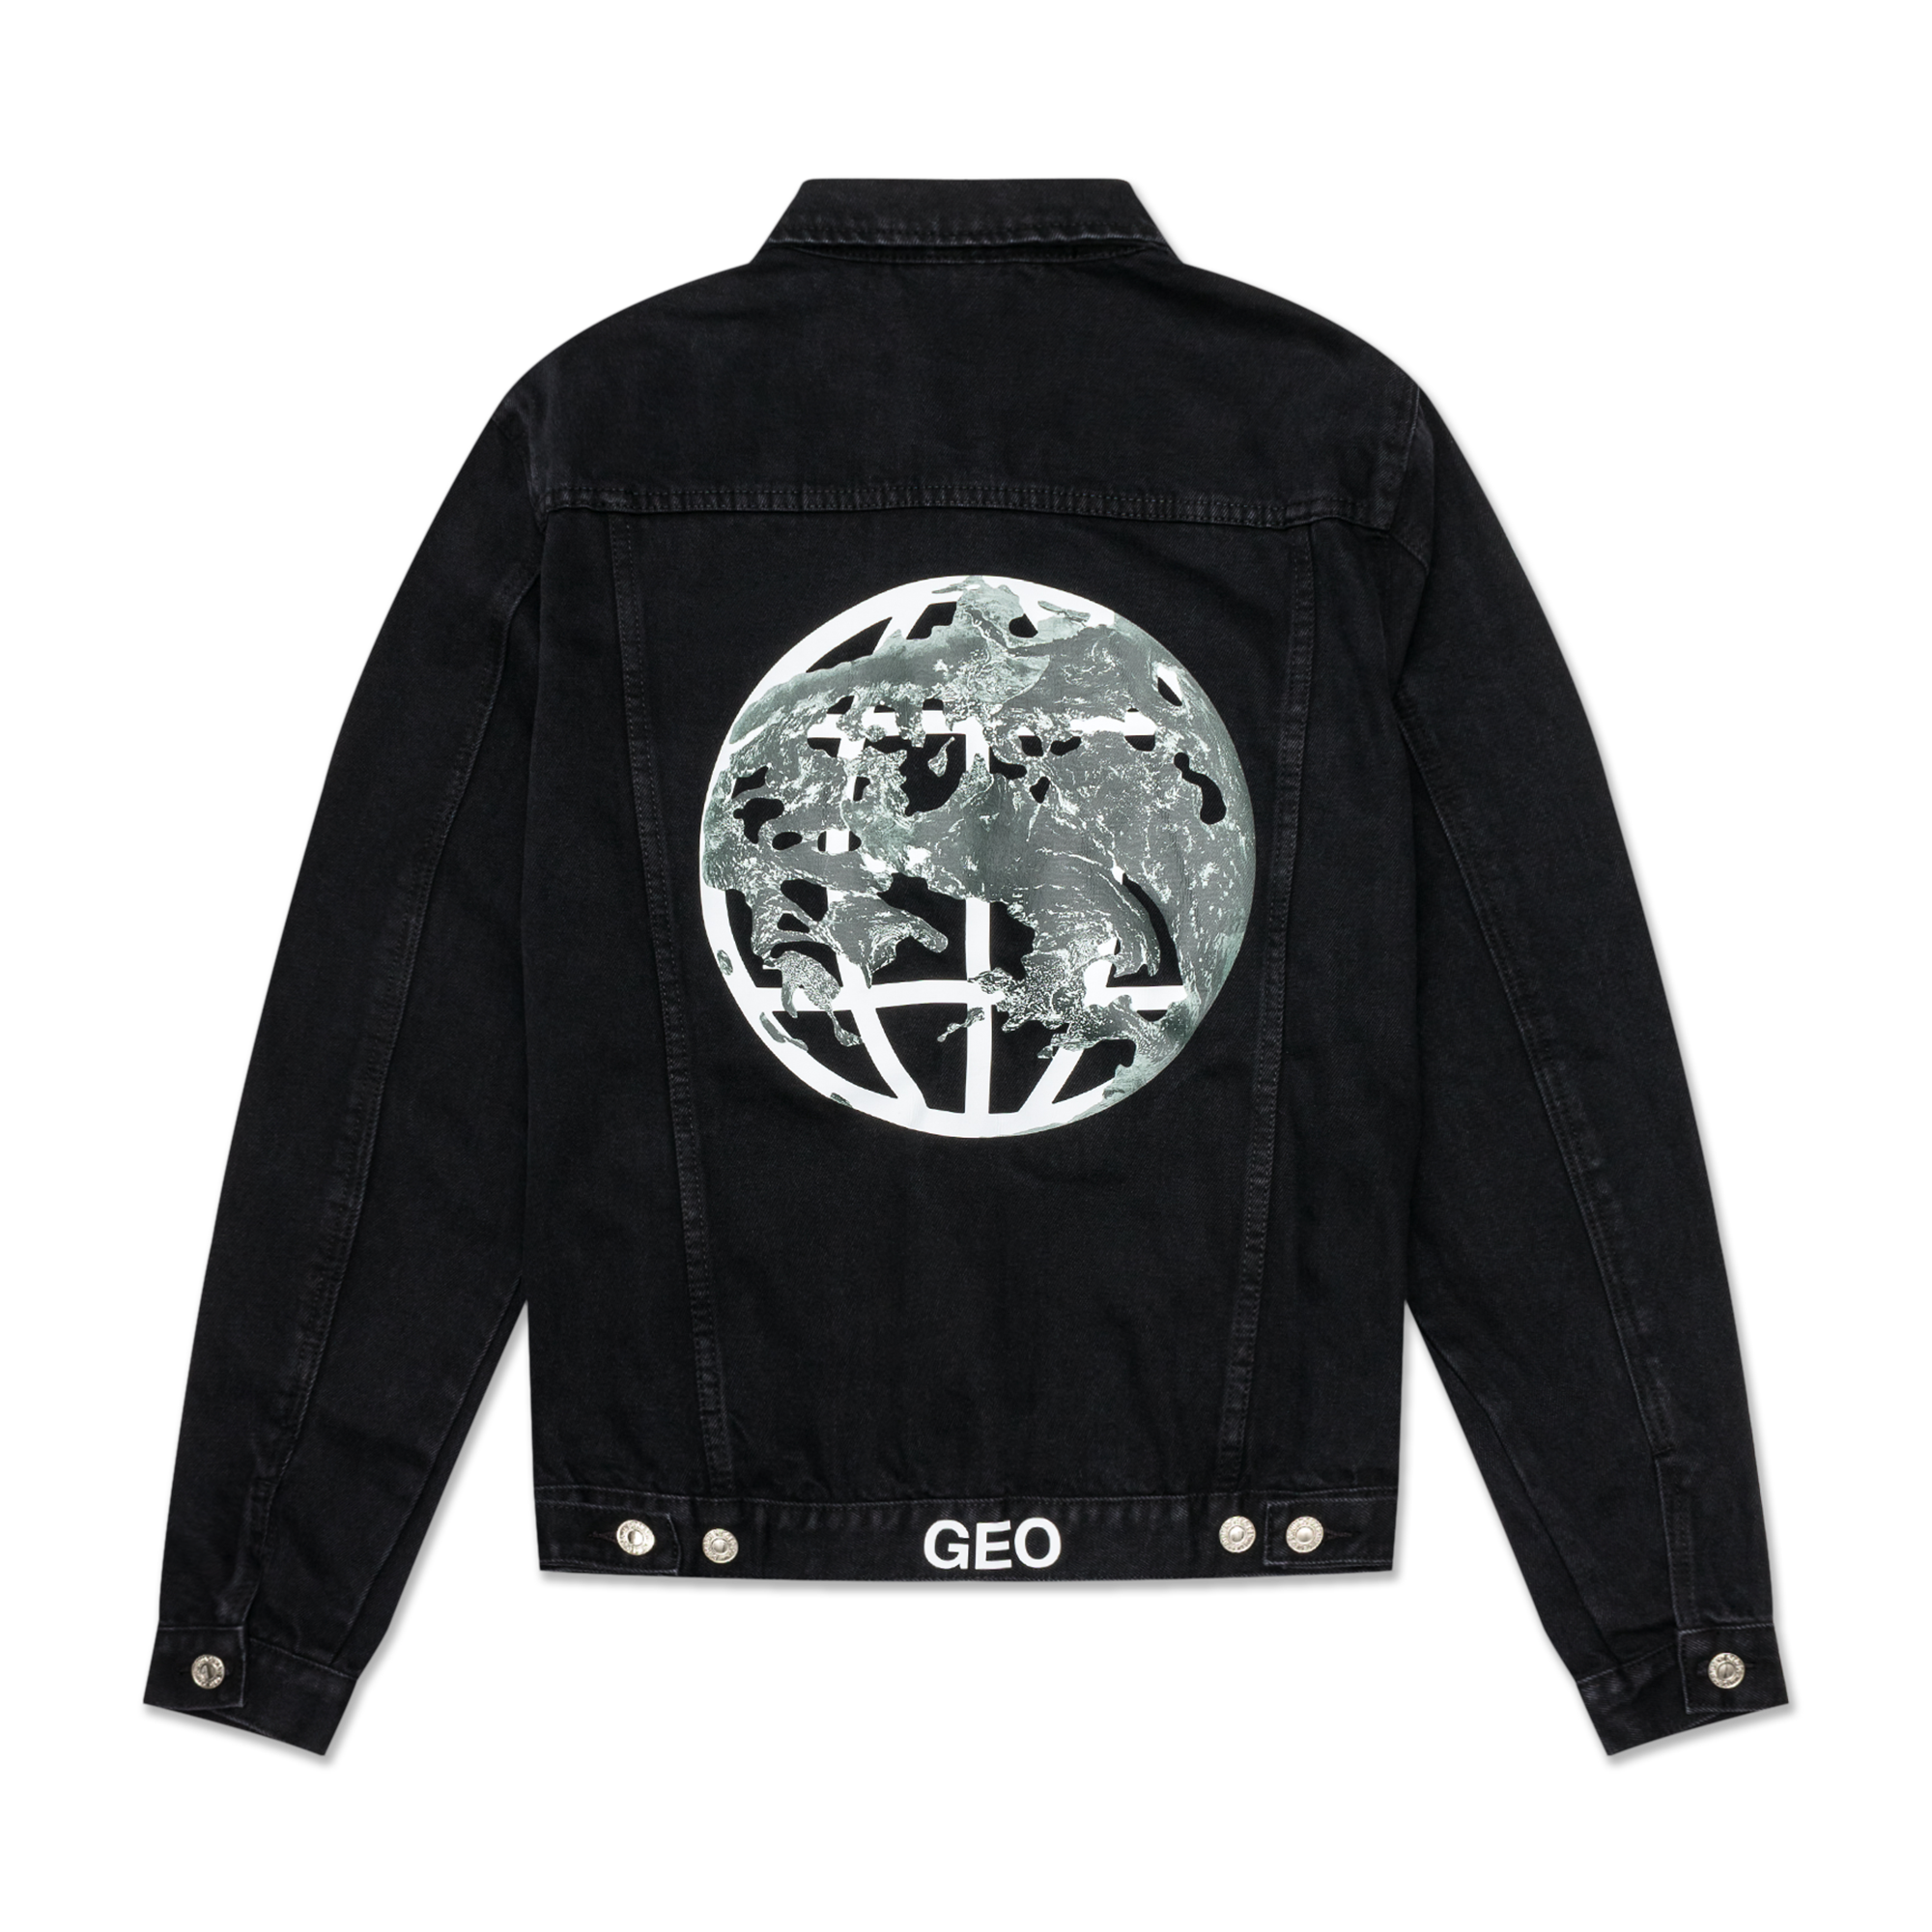 black jacket product image